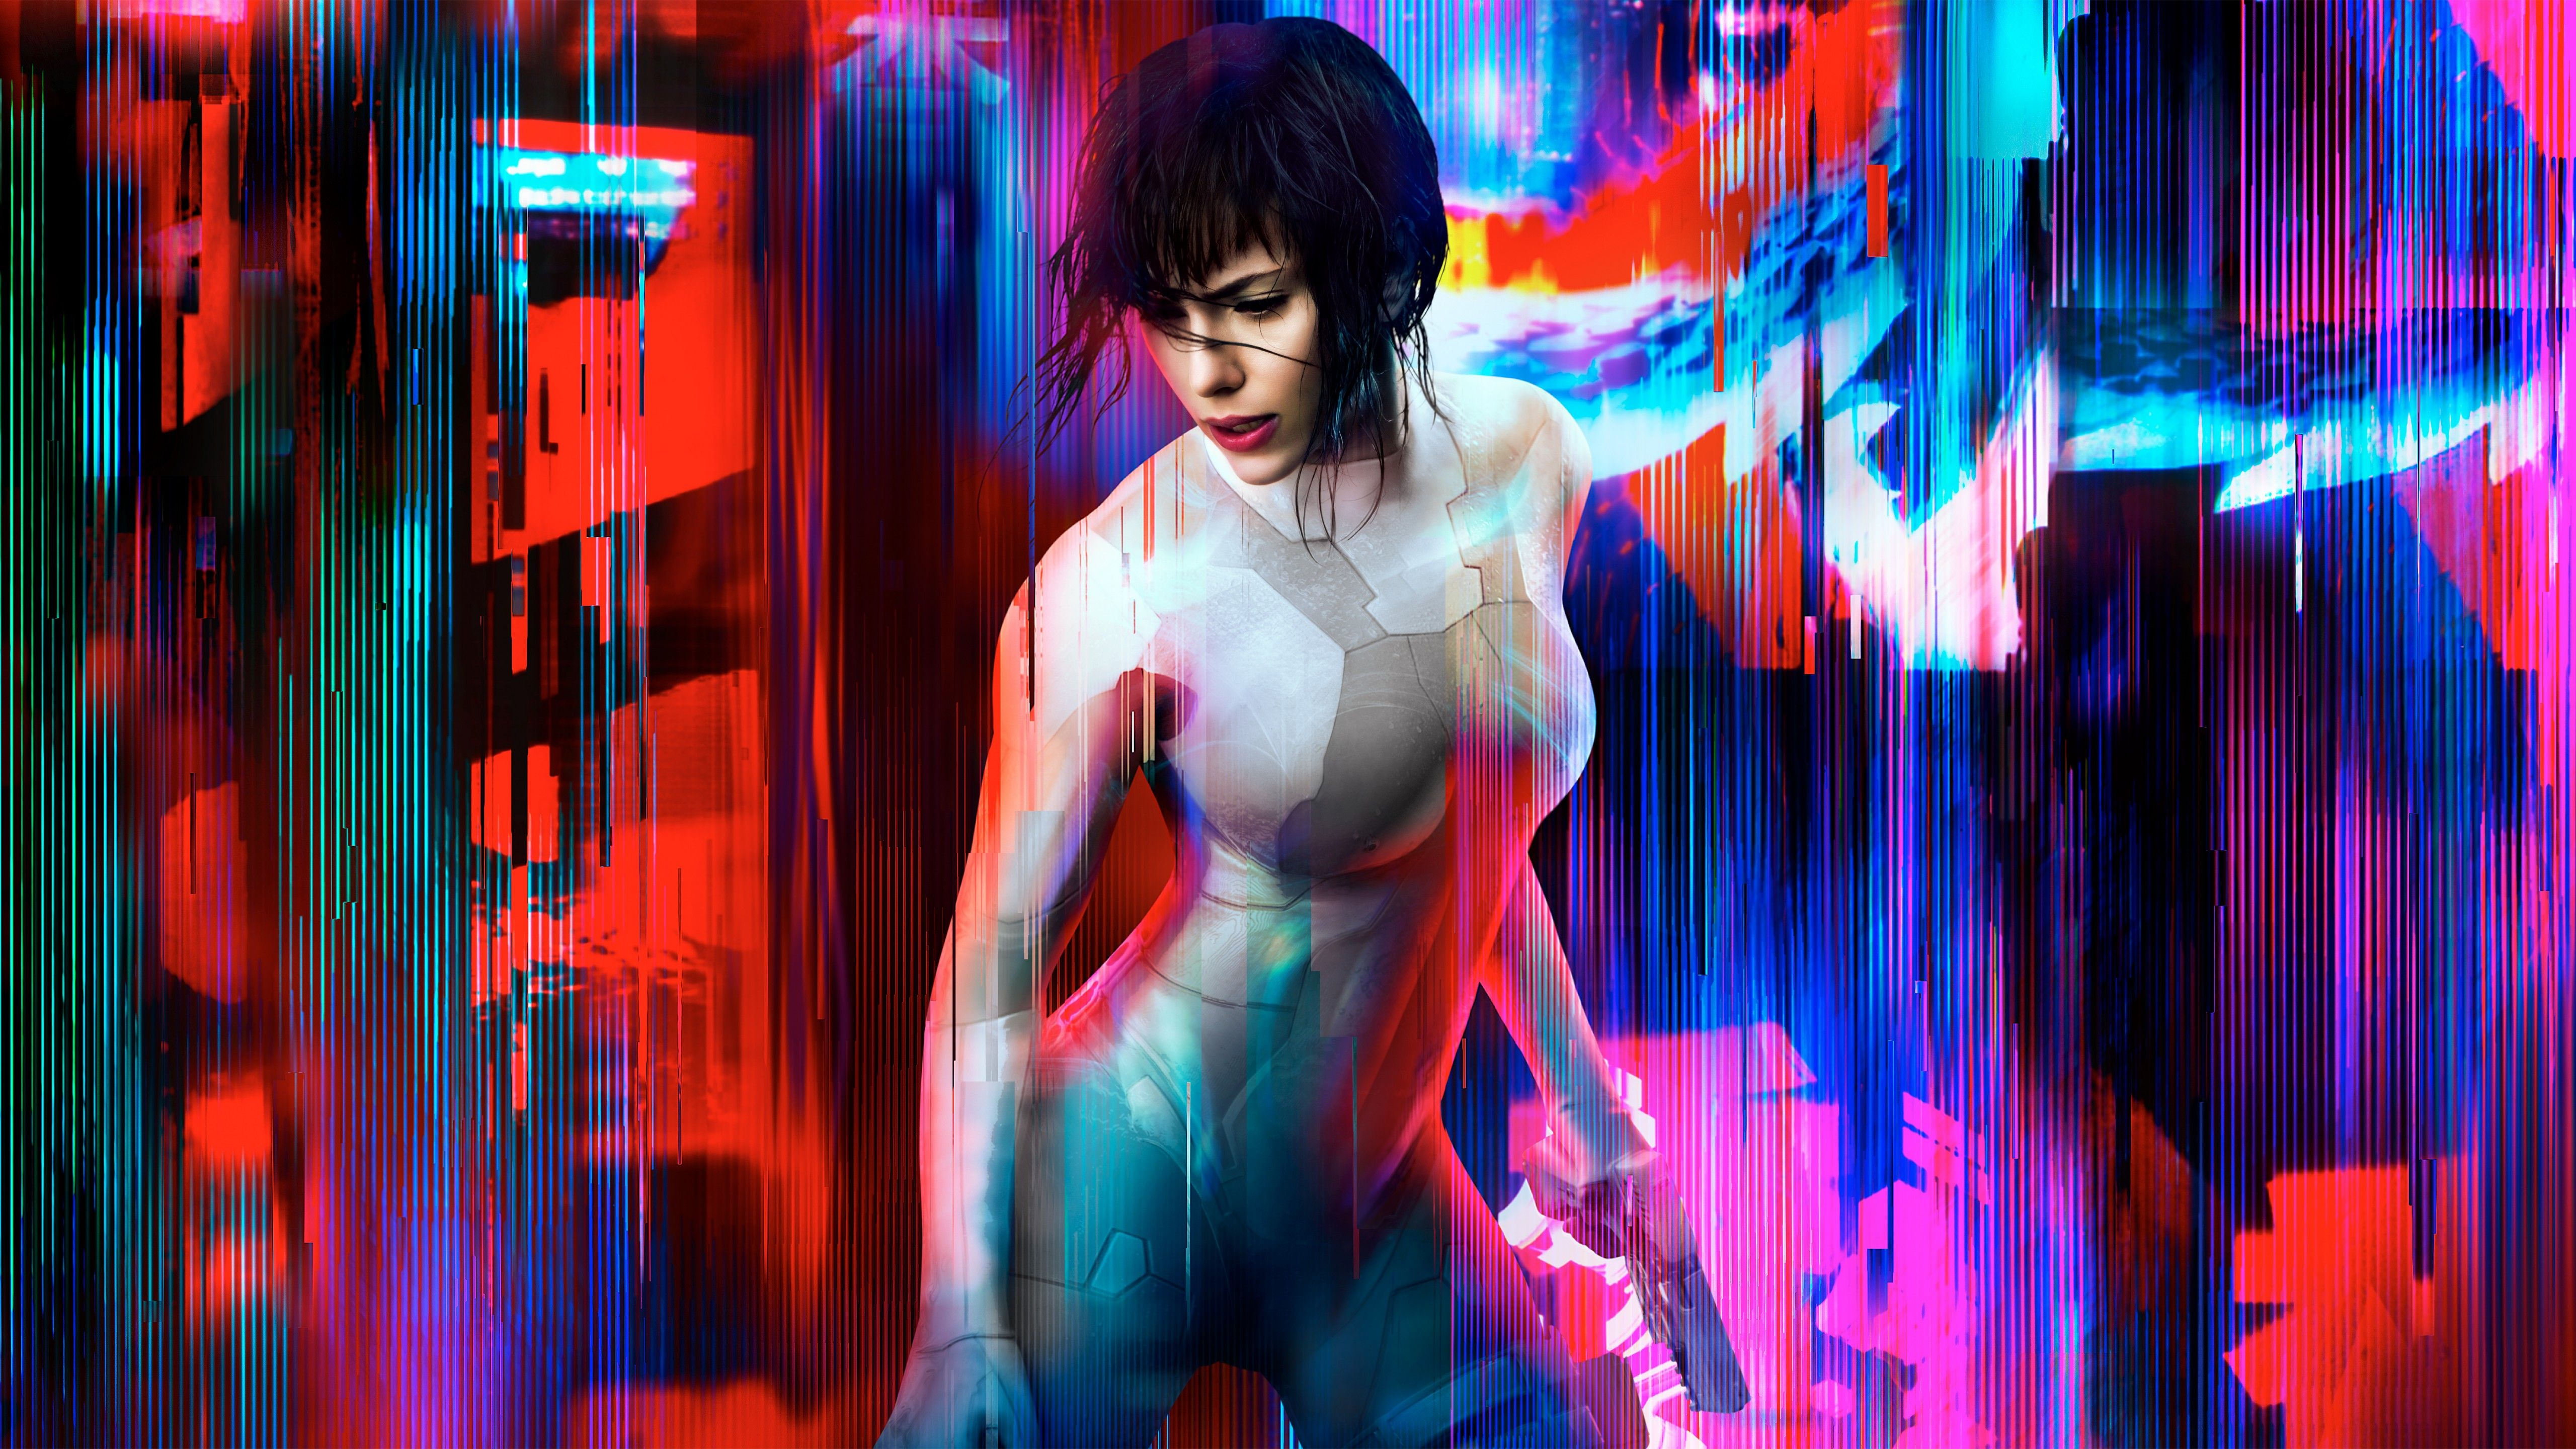 Free[watch] Ghost In The Shell (2017) Full Movie Free Online Hd